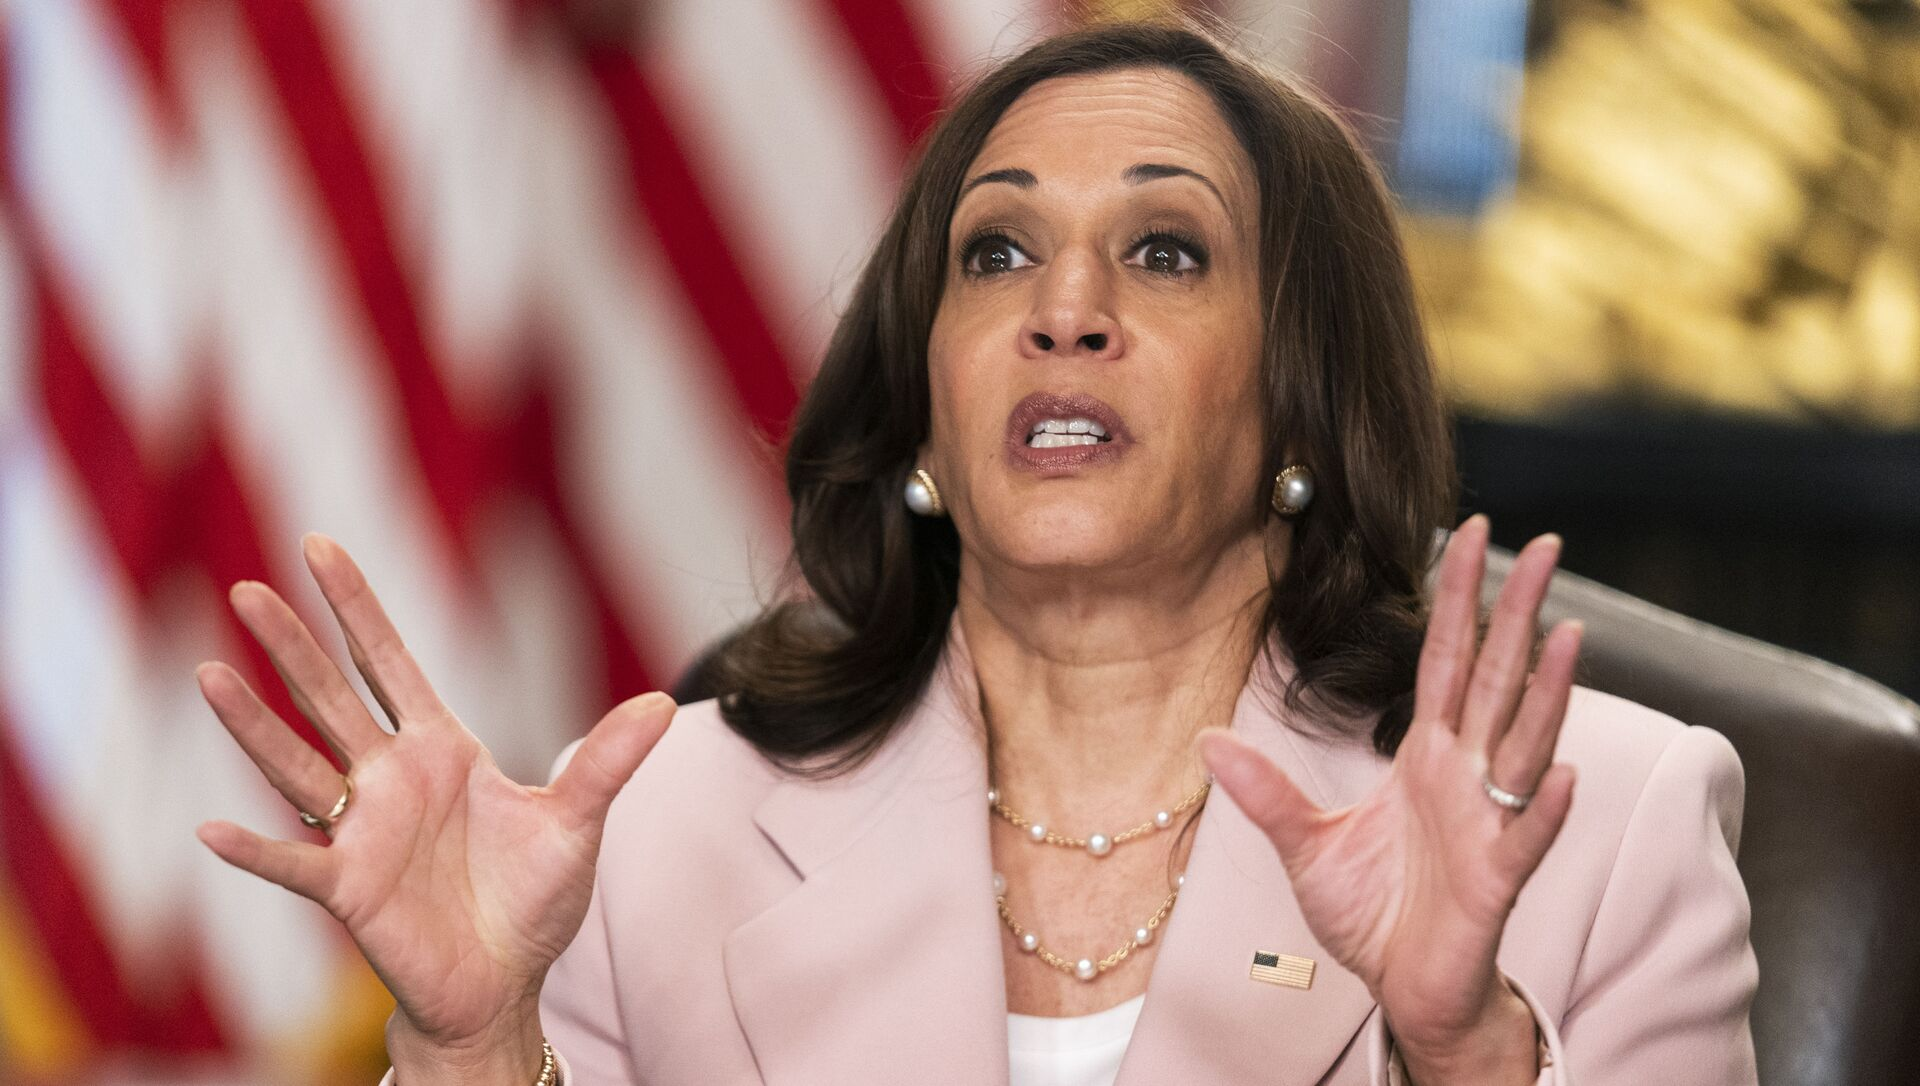 Vice President Kamala Harris speaks during a roundtable with disabilities advocates on voting rights in the Vice President's Ceremonial Office at the Eisenhower Executive Office Building on the White House complex, Wednesday, July 14, 2021, in Washington - Sputnik International, 1920, 05.08.2021